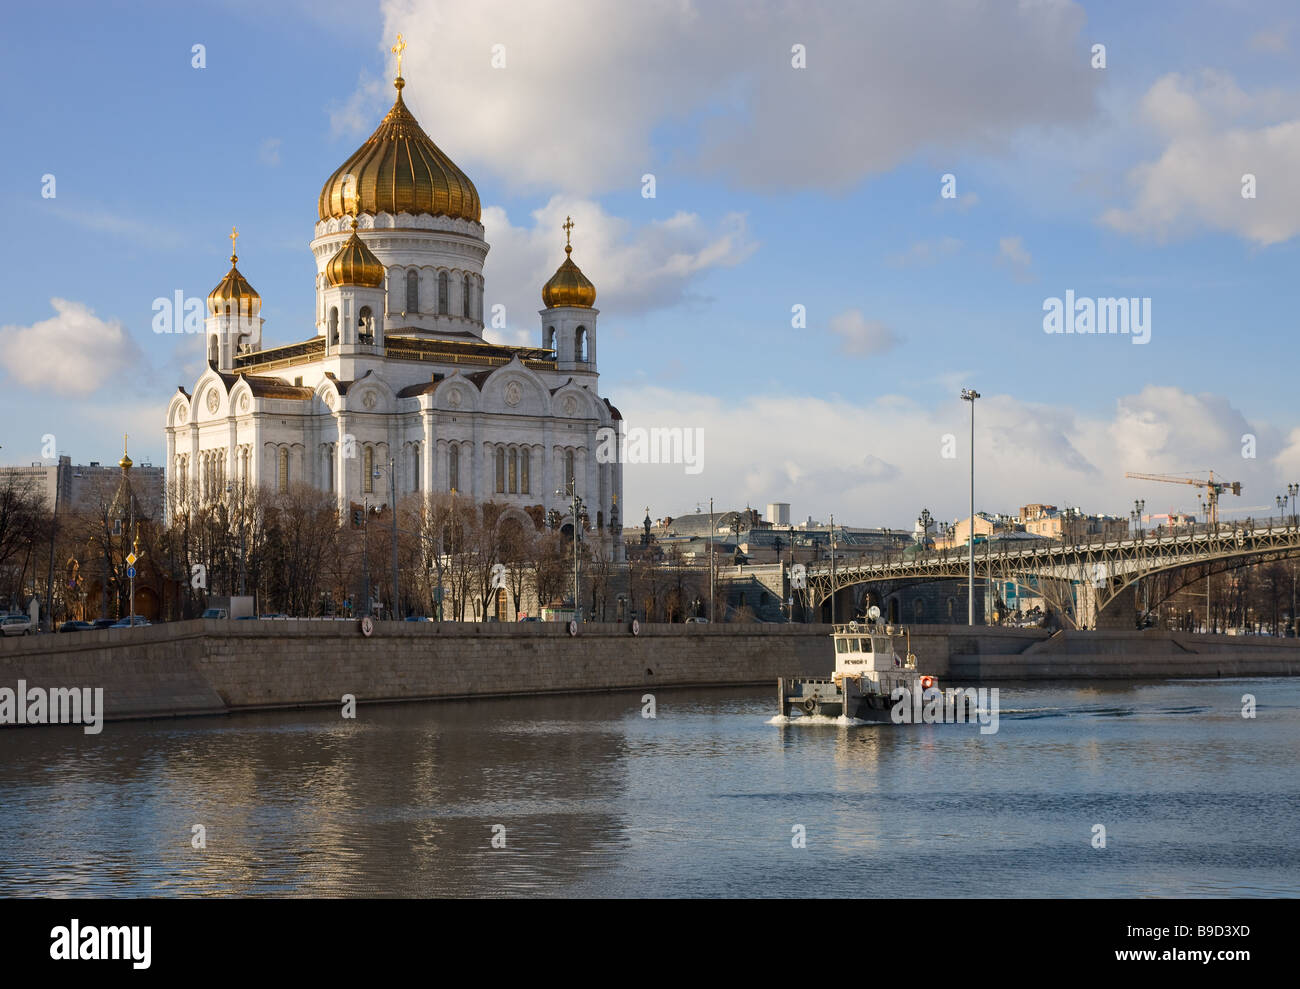 Moscow river in Moscow city, Russia. Small tugboat begins the navigation after winter. - Stock Image